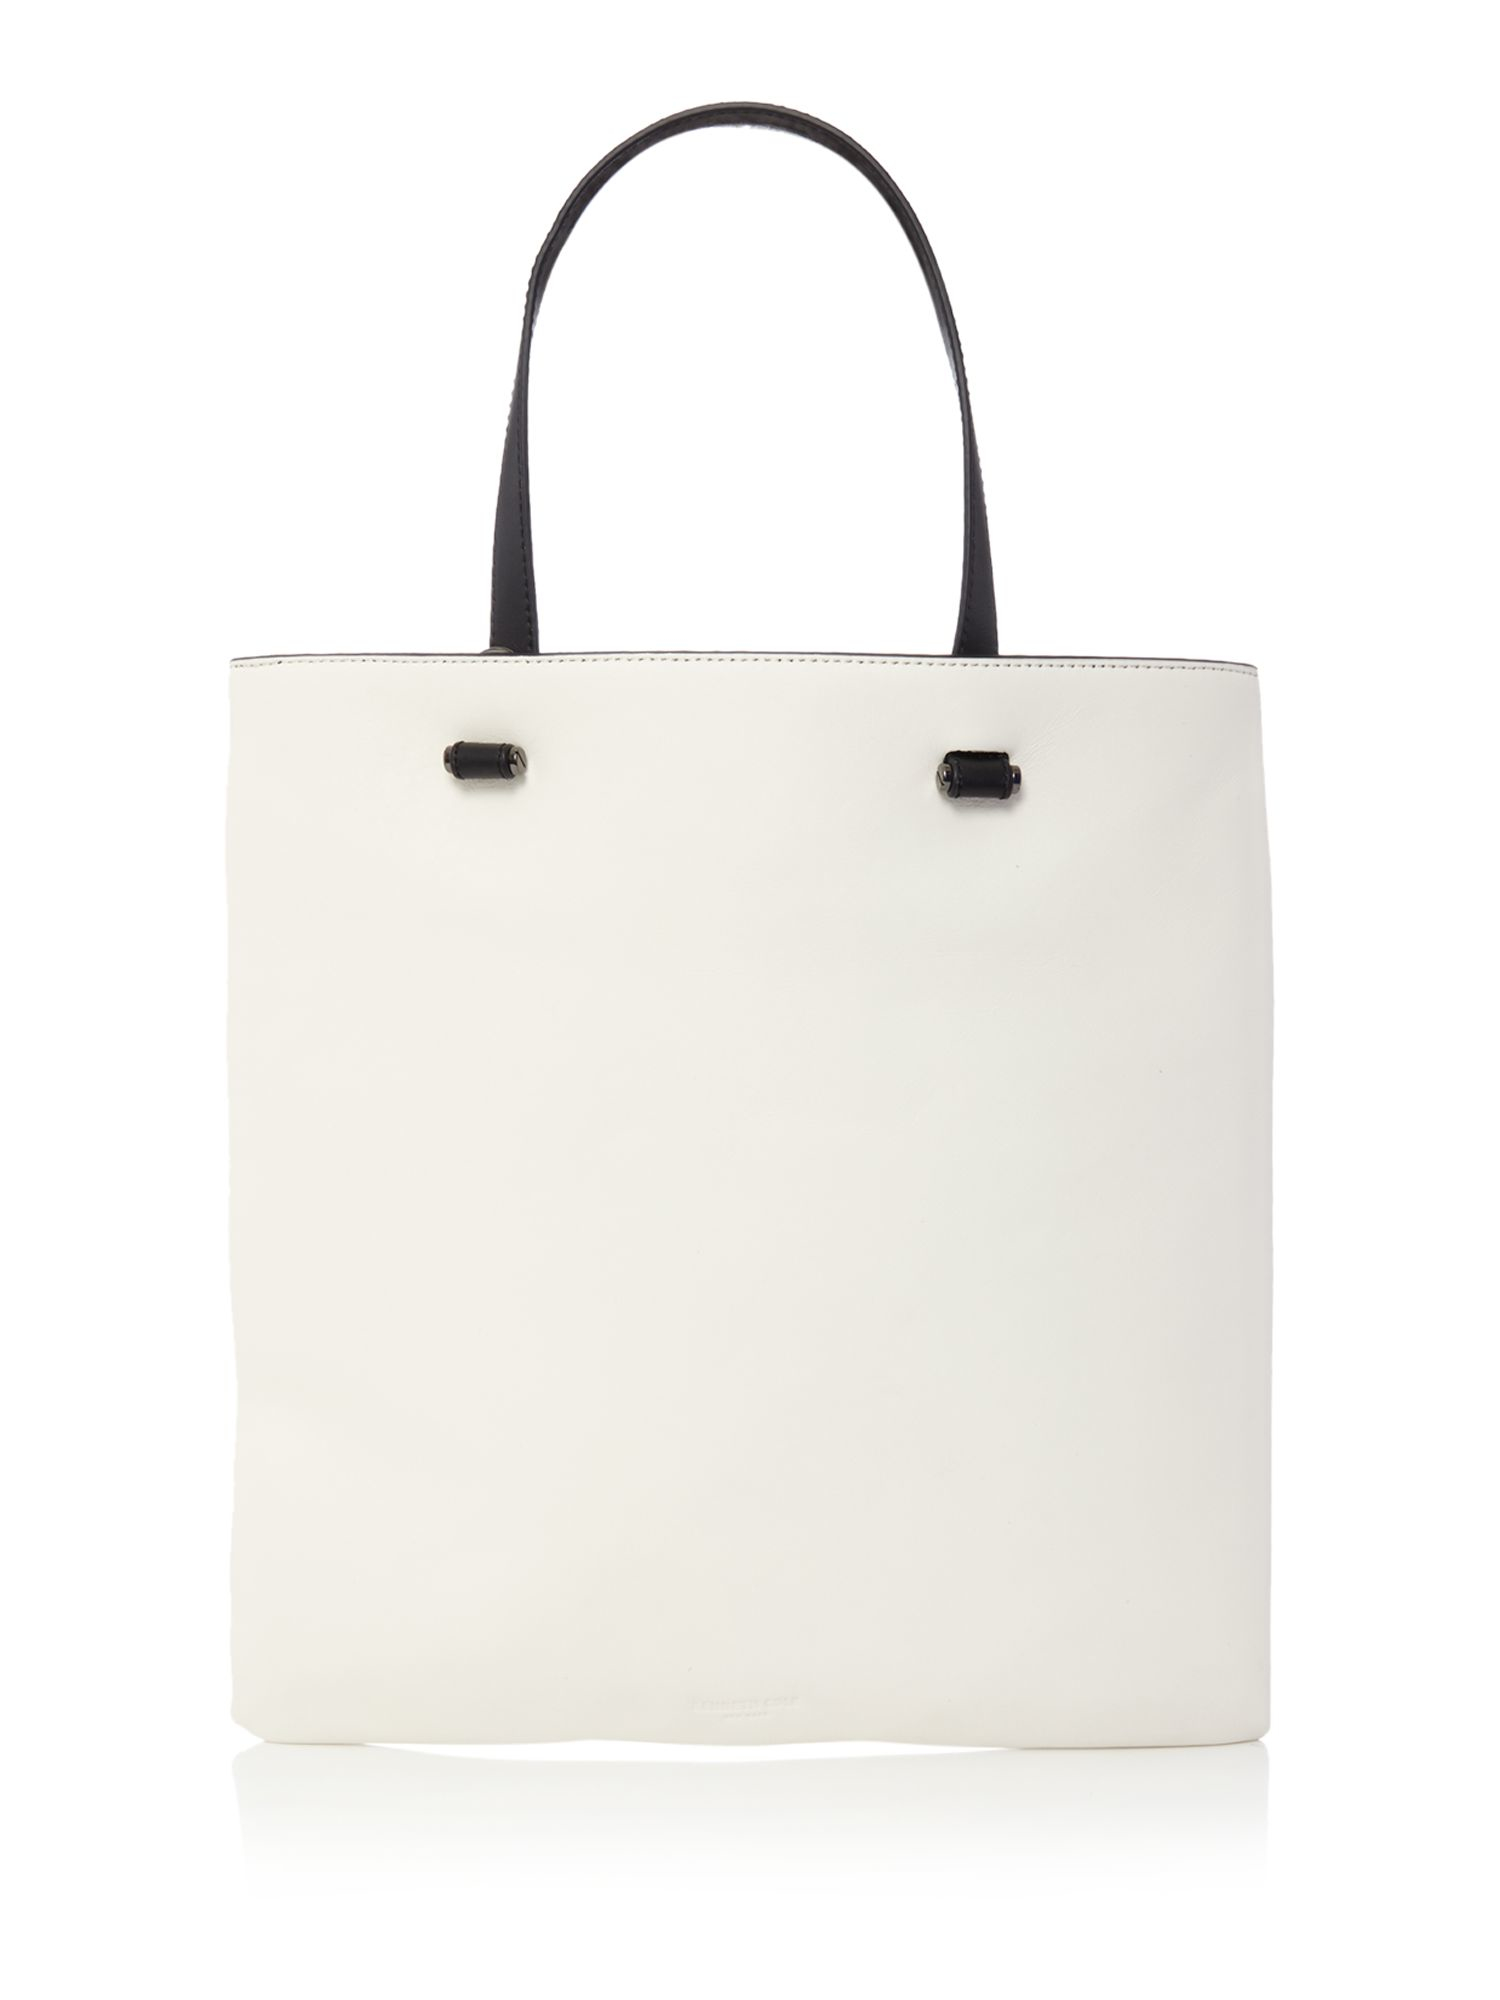 Kenneth Cole White And Black Tote Bag in White - Lyst 4ee6a983172b2